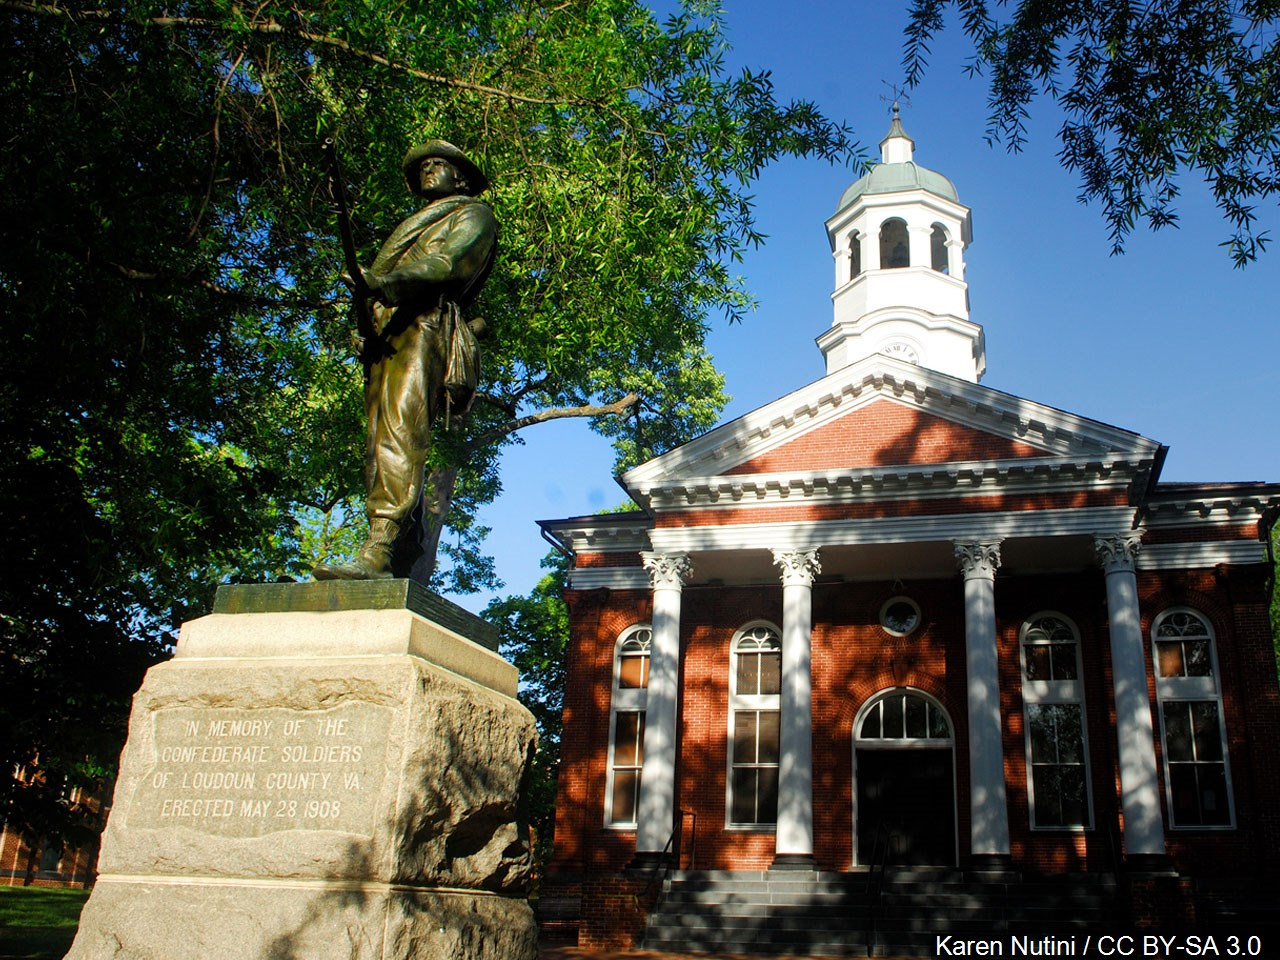 A group dedicated to preserving Charlottesville's Confederate monuments is asking the city to pay for an inspection of recent vandalism to two monument pedestals and install cameras in the area.